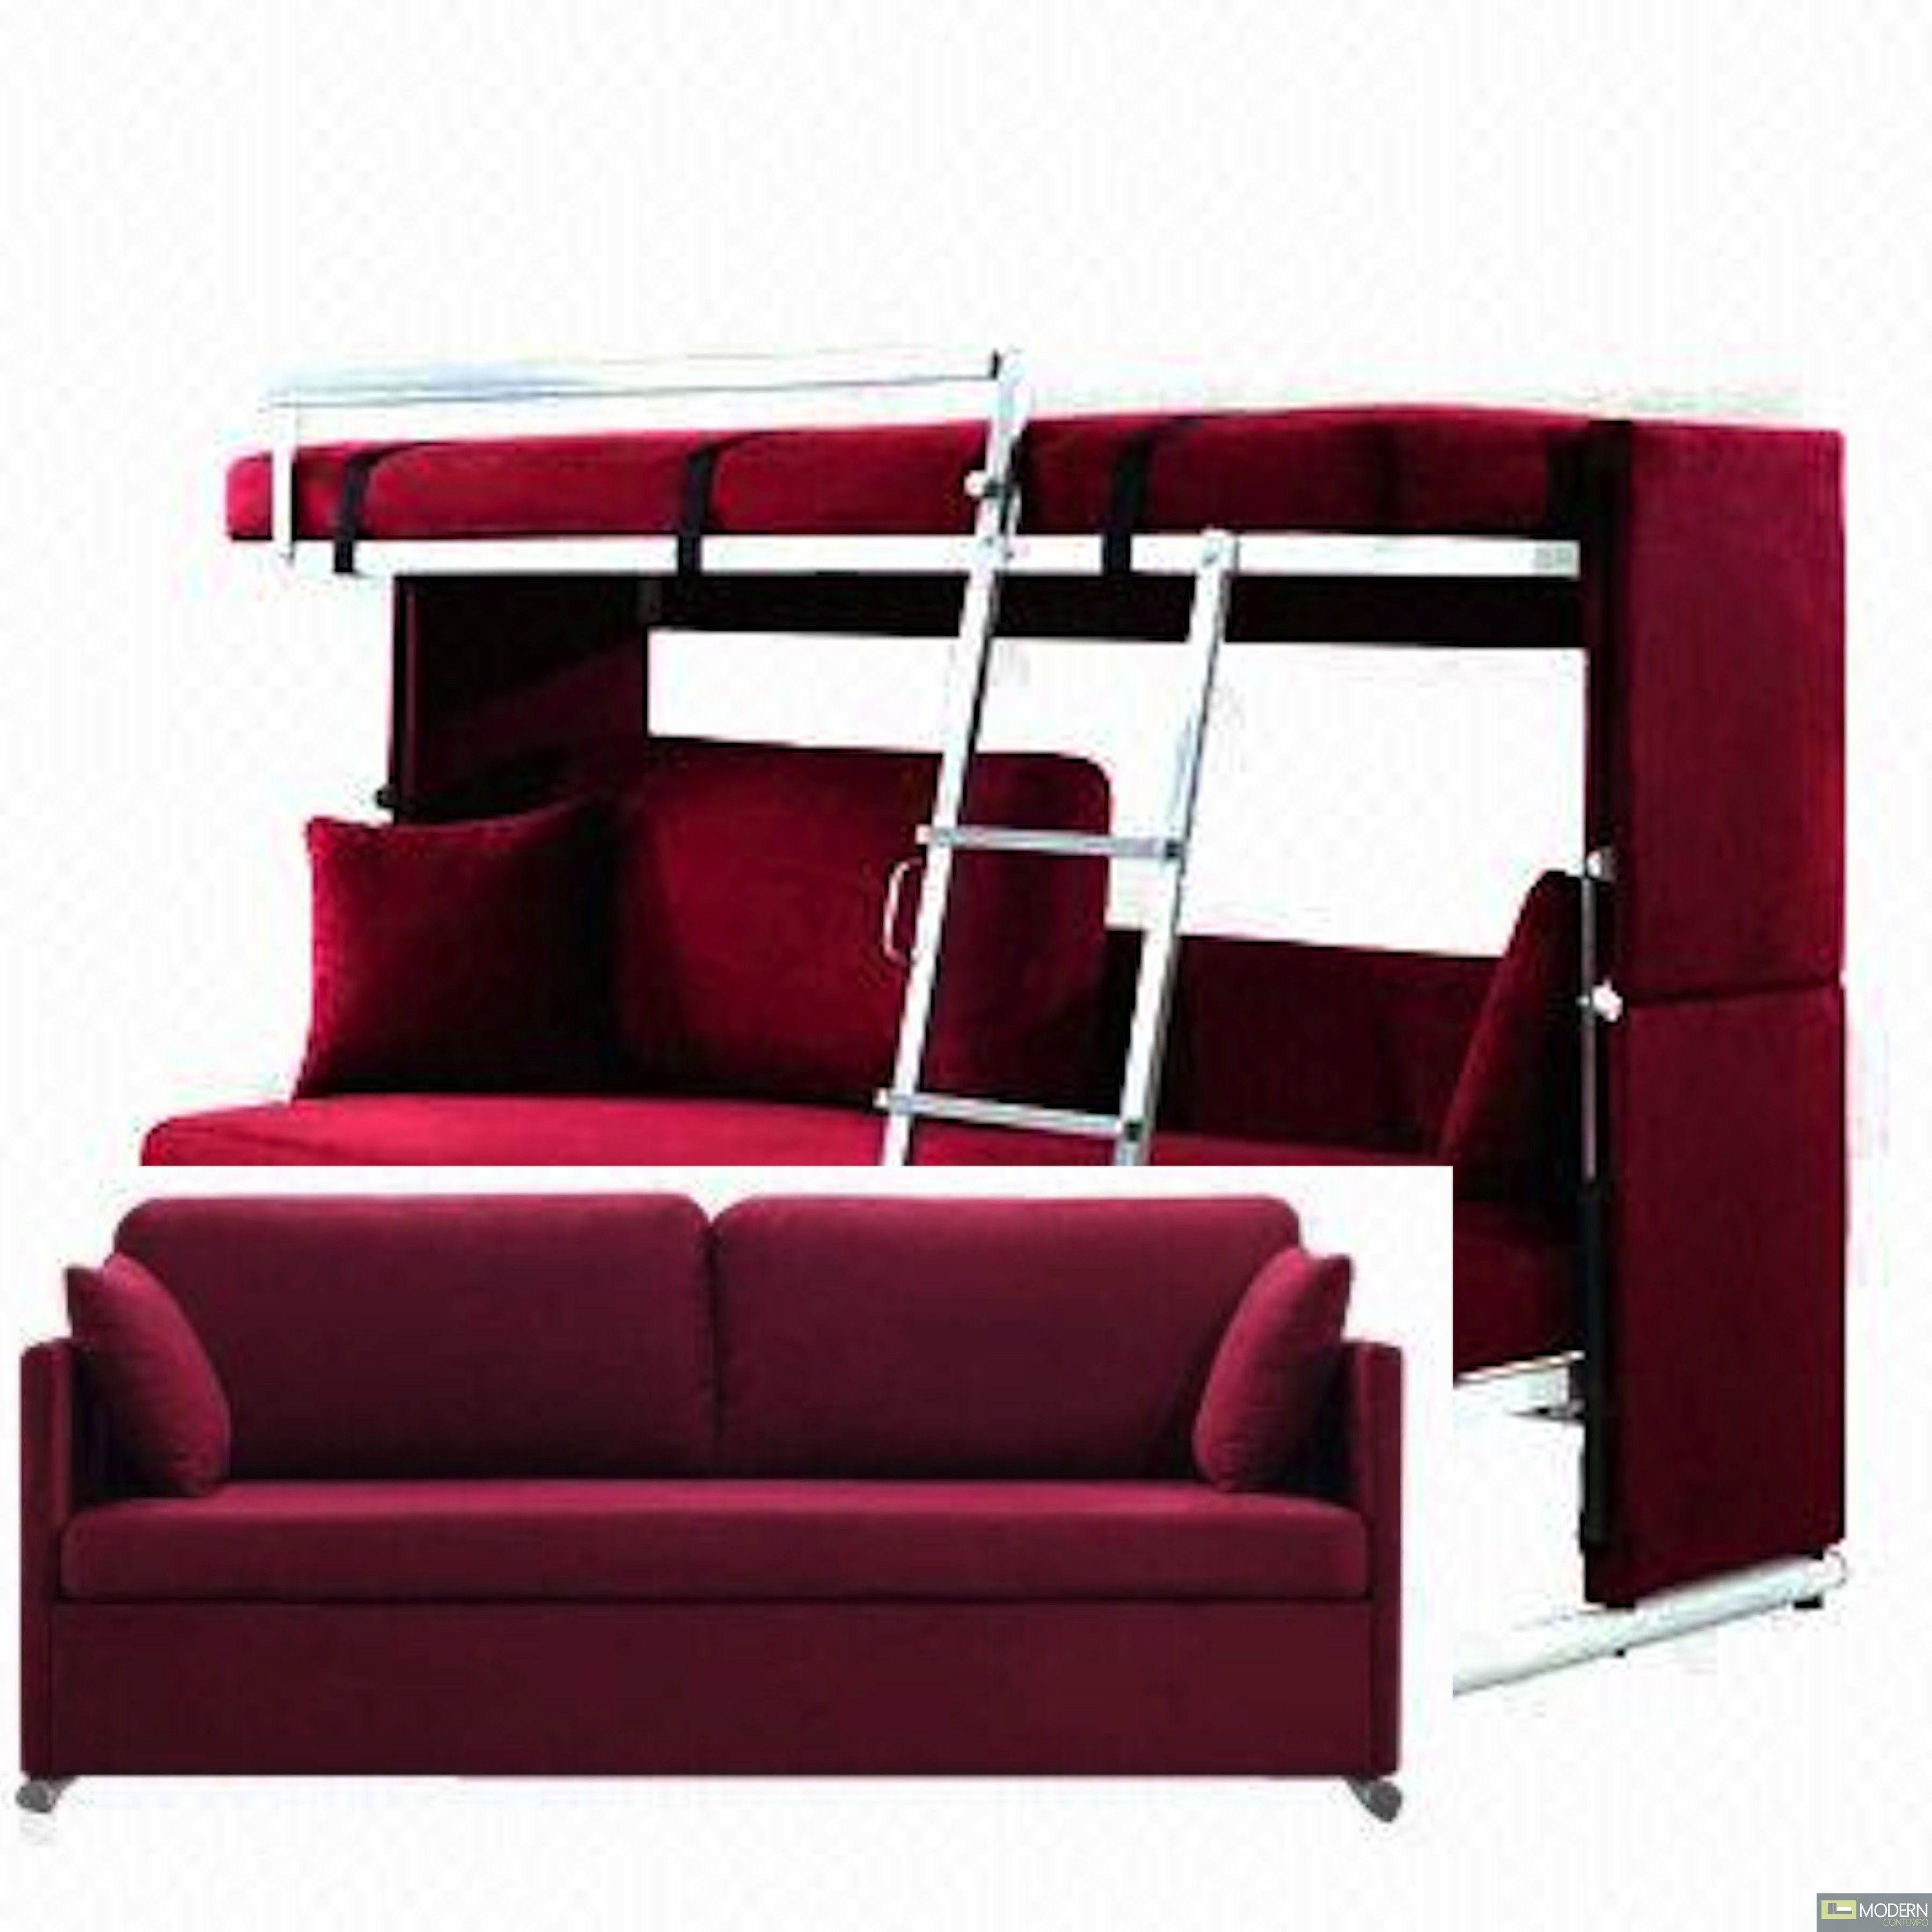 Chair Converts To Bed Alana Modern Convertible Sofa Converts To Bunk Bed For